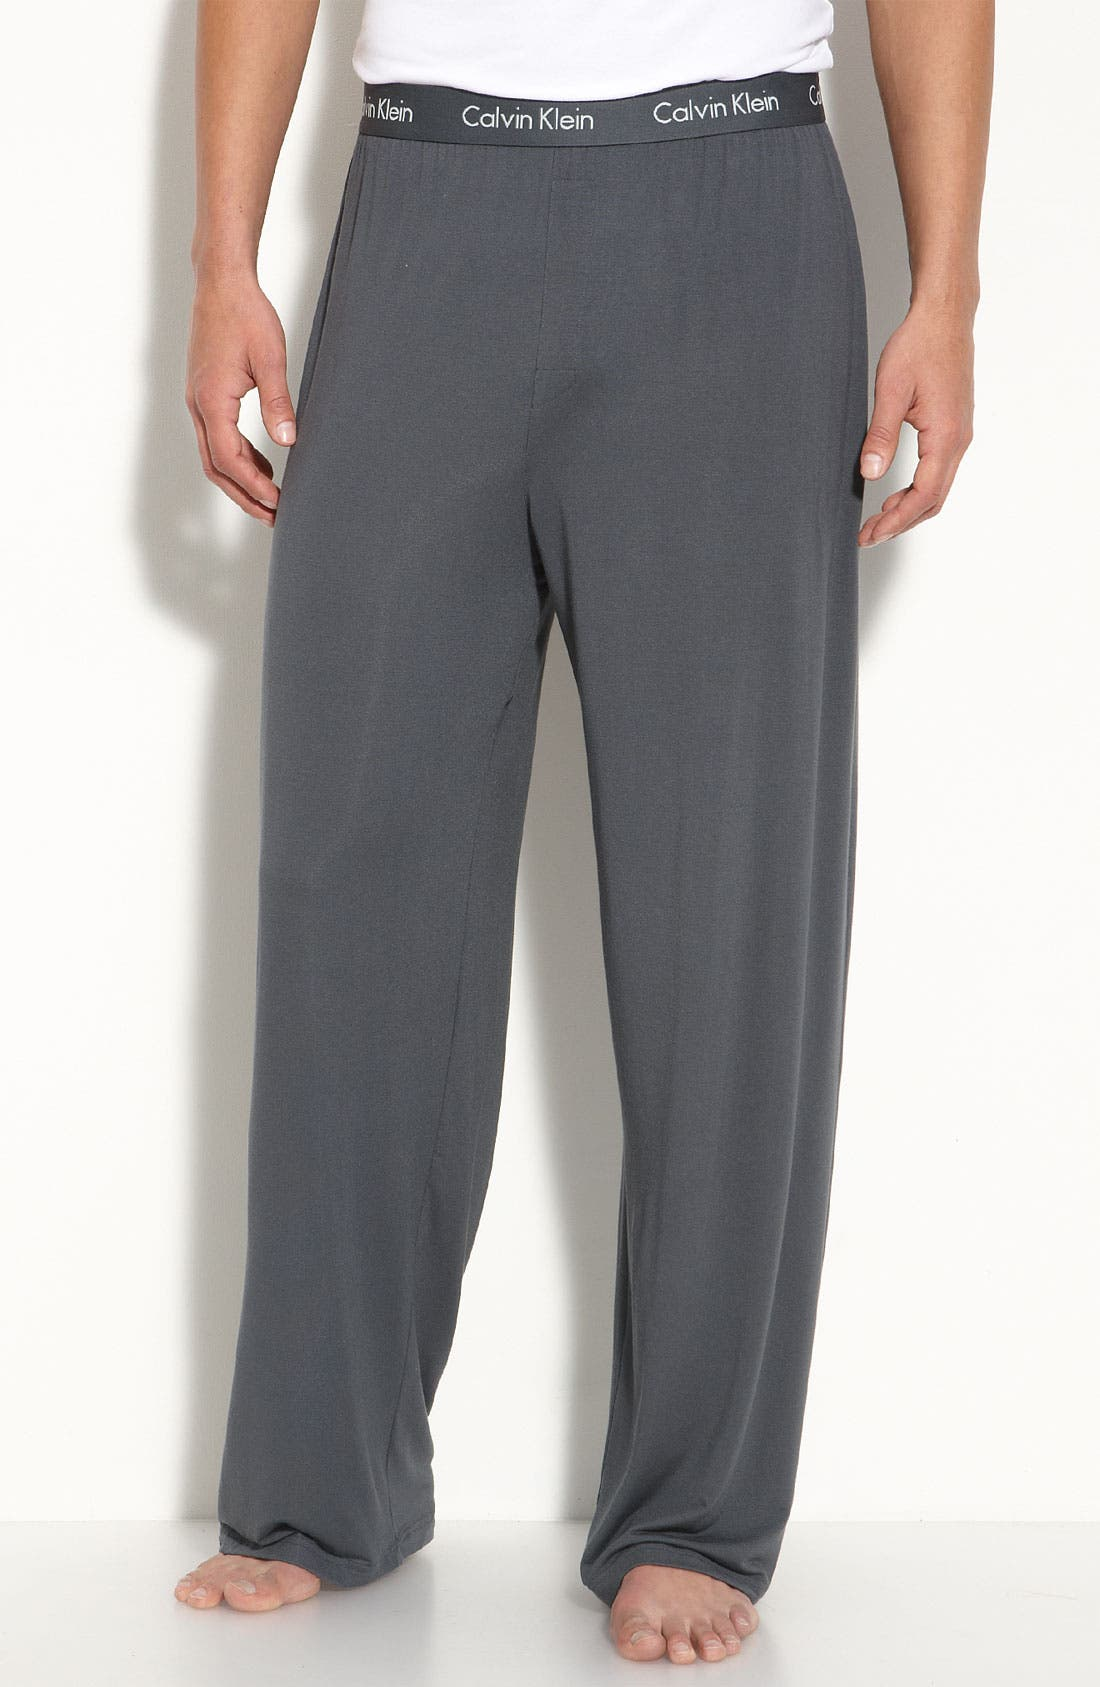 Alternate Image 1 Selected - Calvin Klein 'U1143' Micromodal Lounge Pants